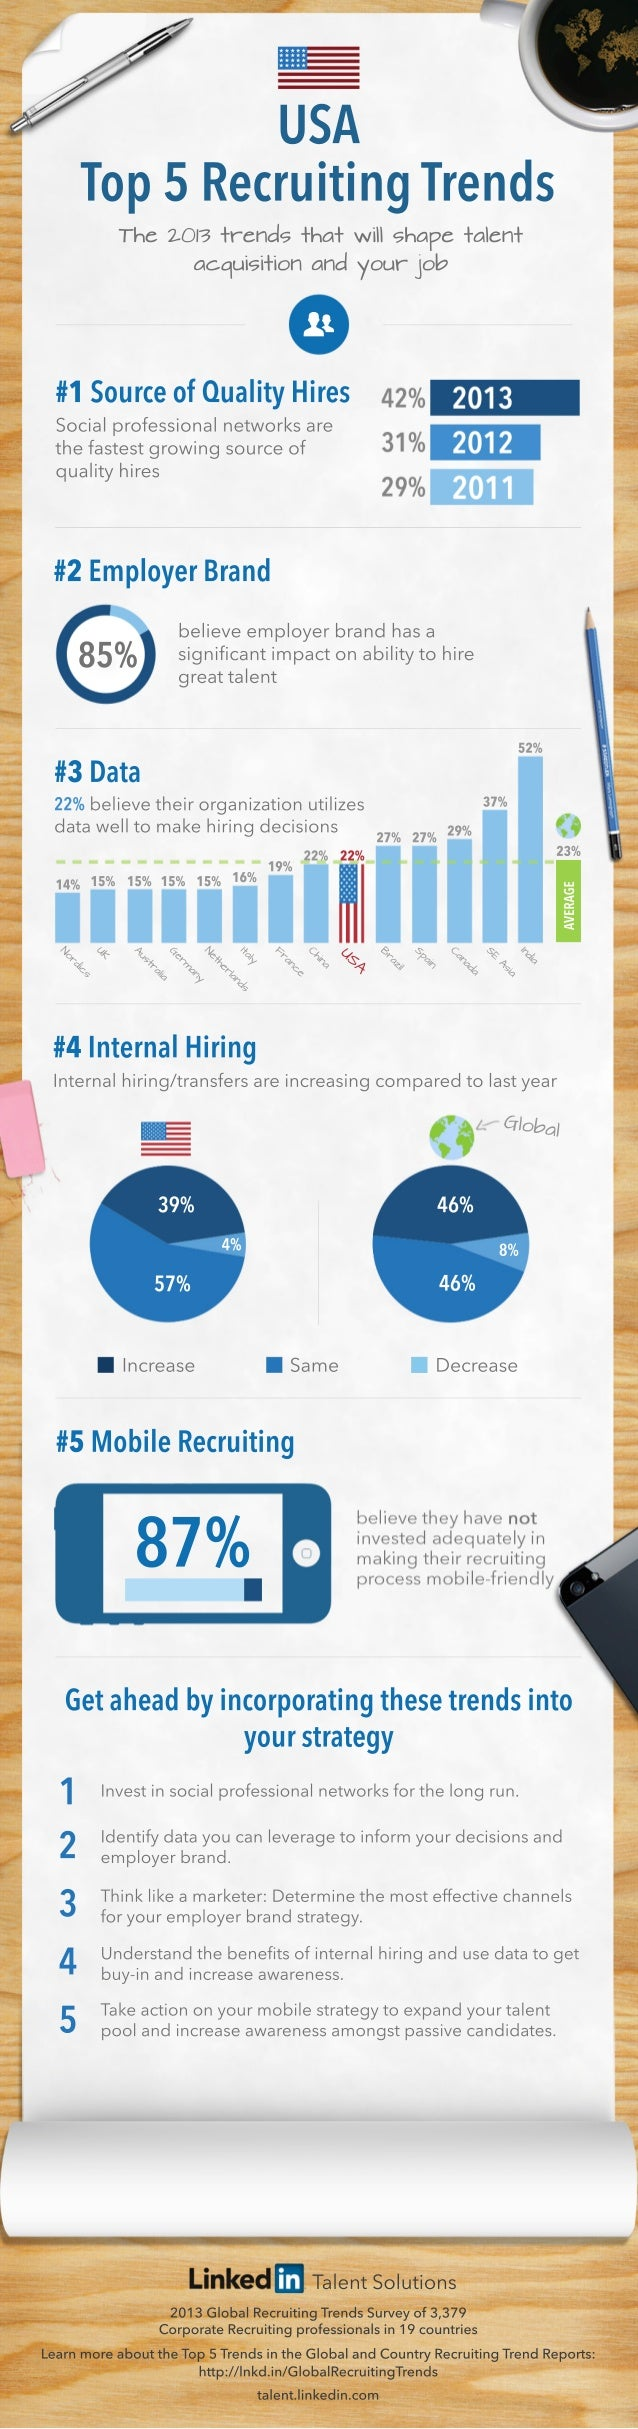 United States Asia Recruiting Trends Infographic 2013 | English